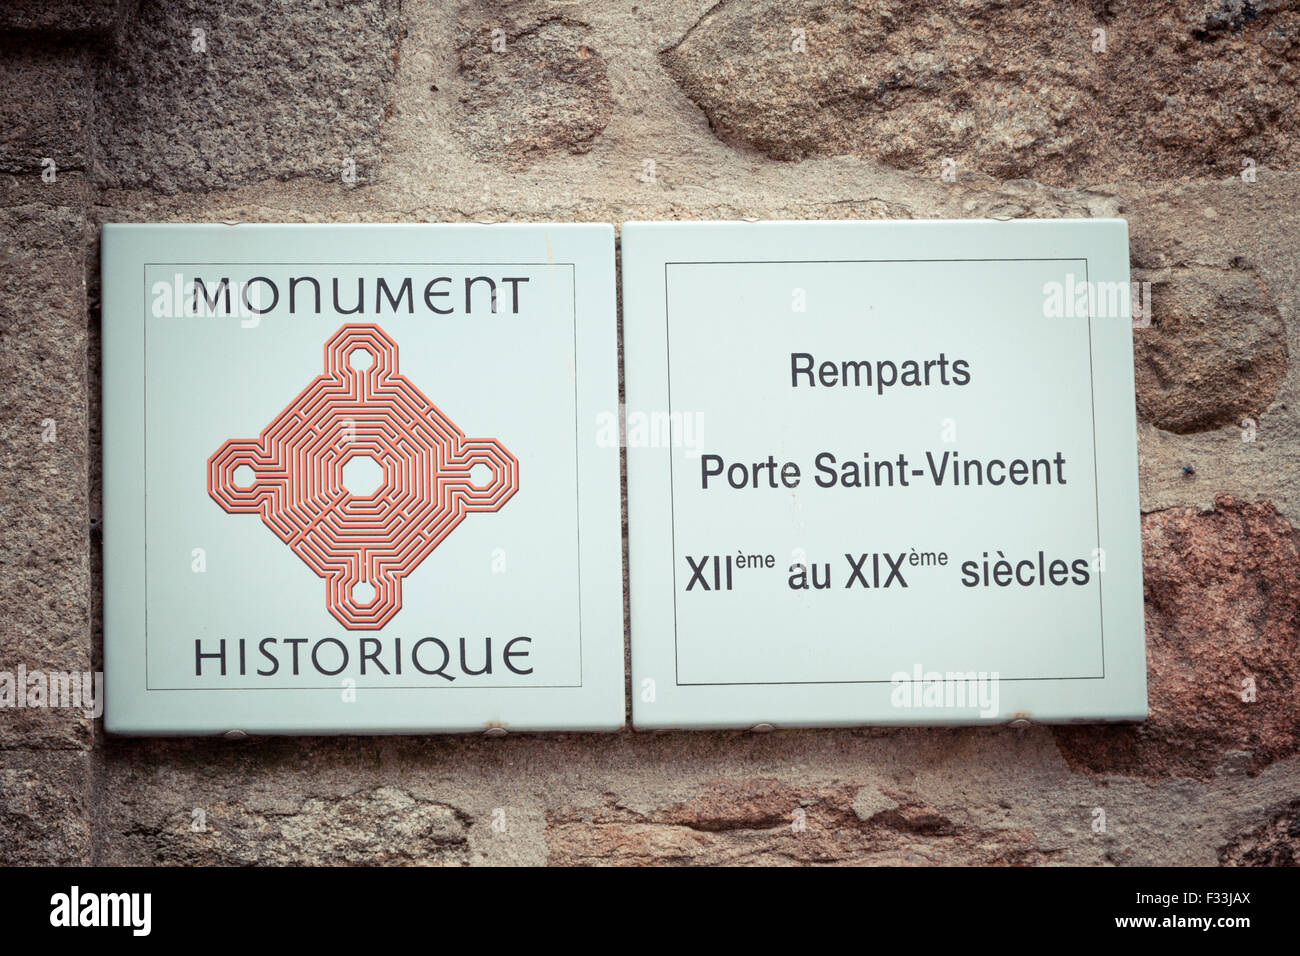 Historical monument sign, Saint Malo, Brittany, France. - Stock Image